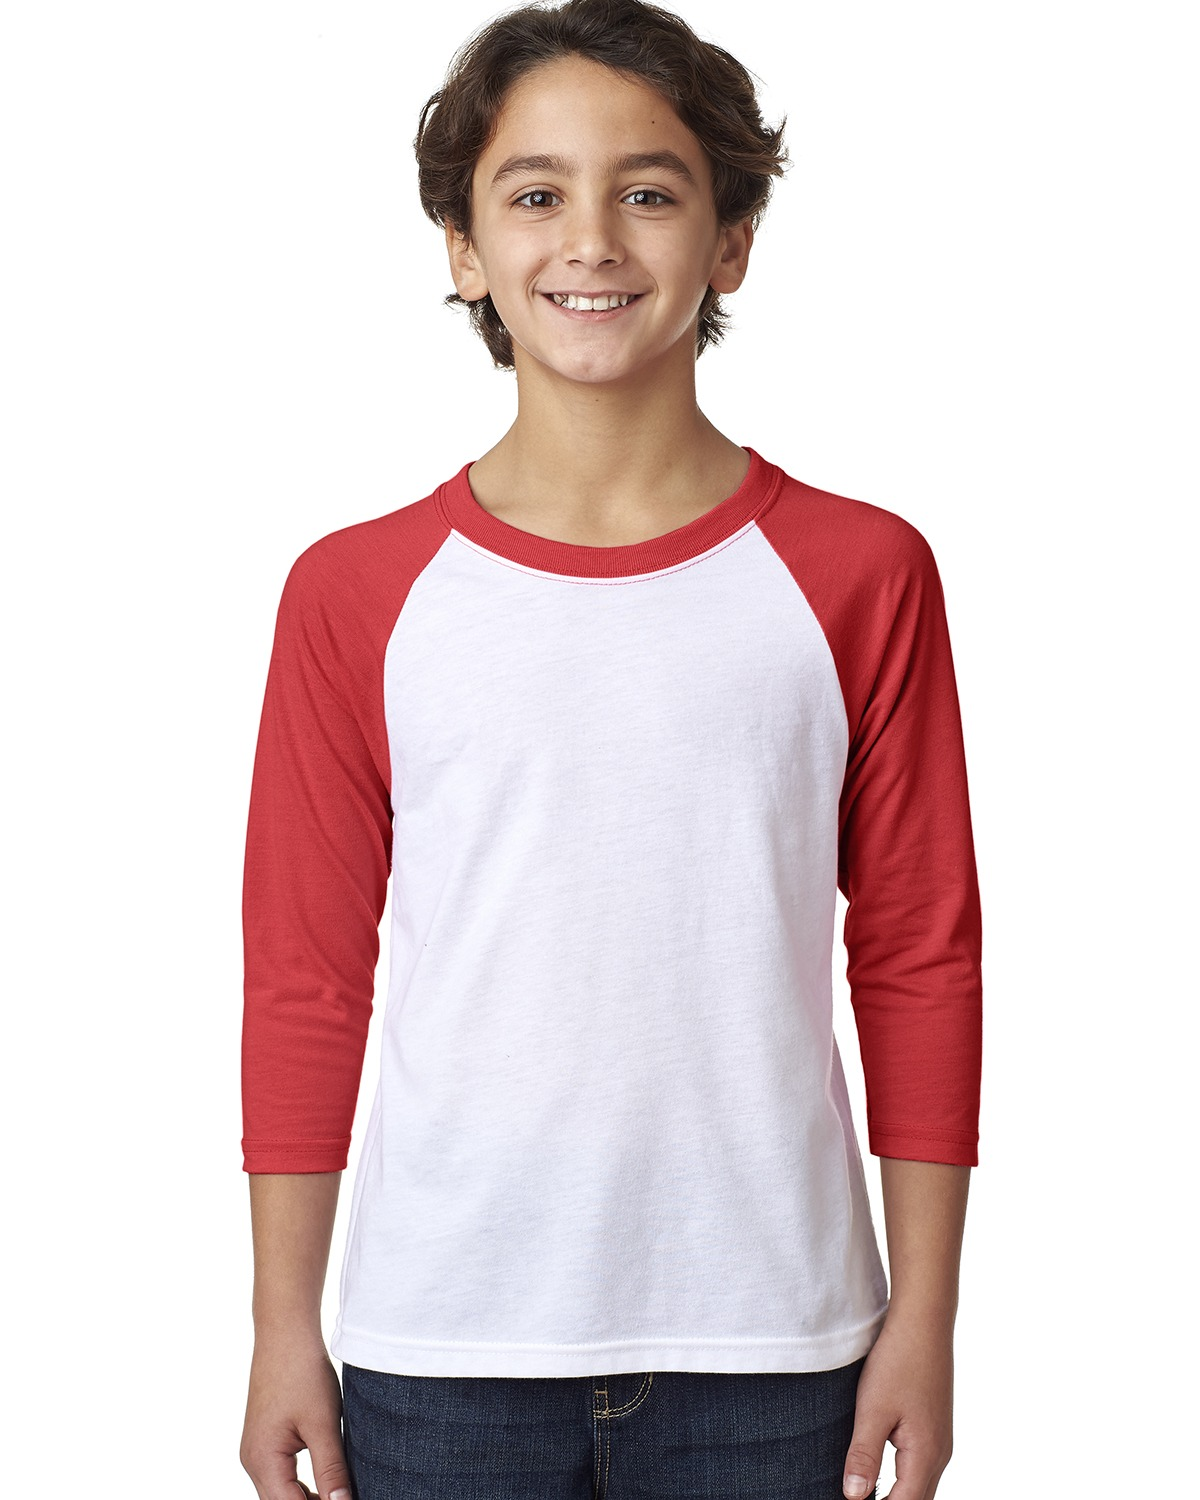 Next Level 3352 - Youth CVC Three-Quarter Sleeve Raglan T-Shirt